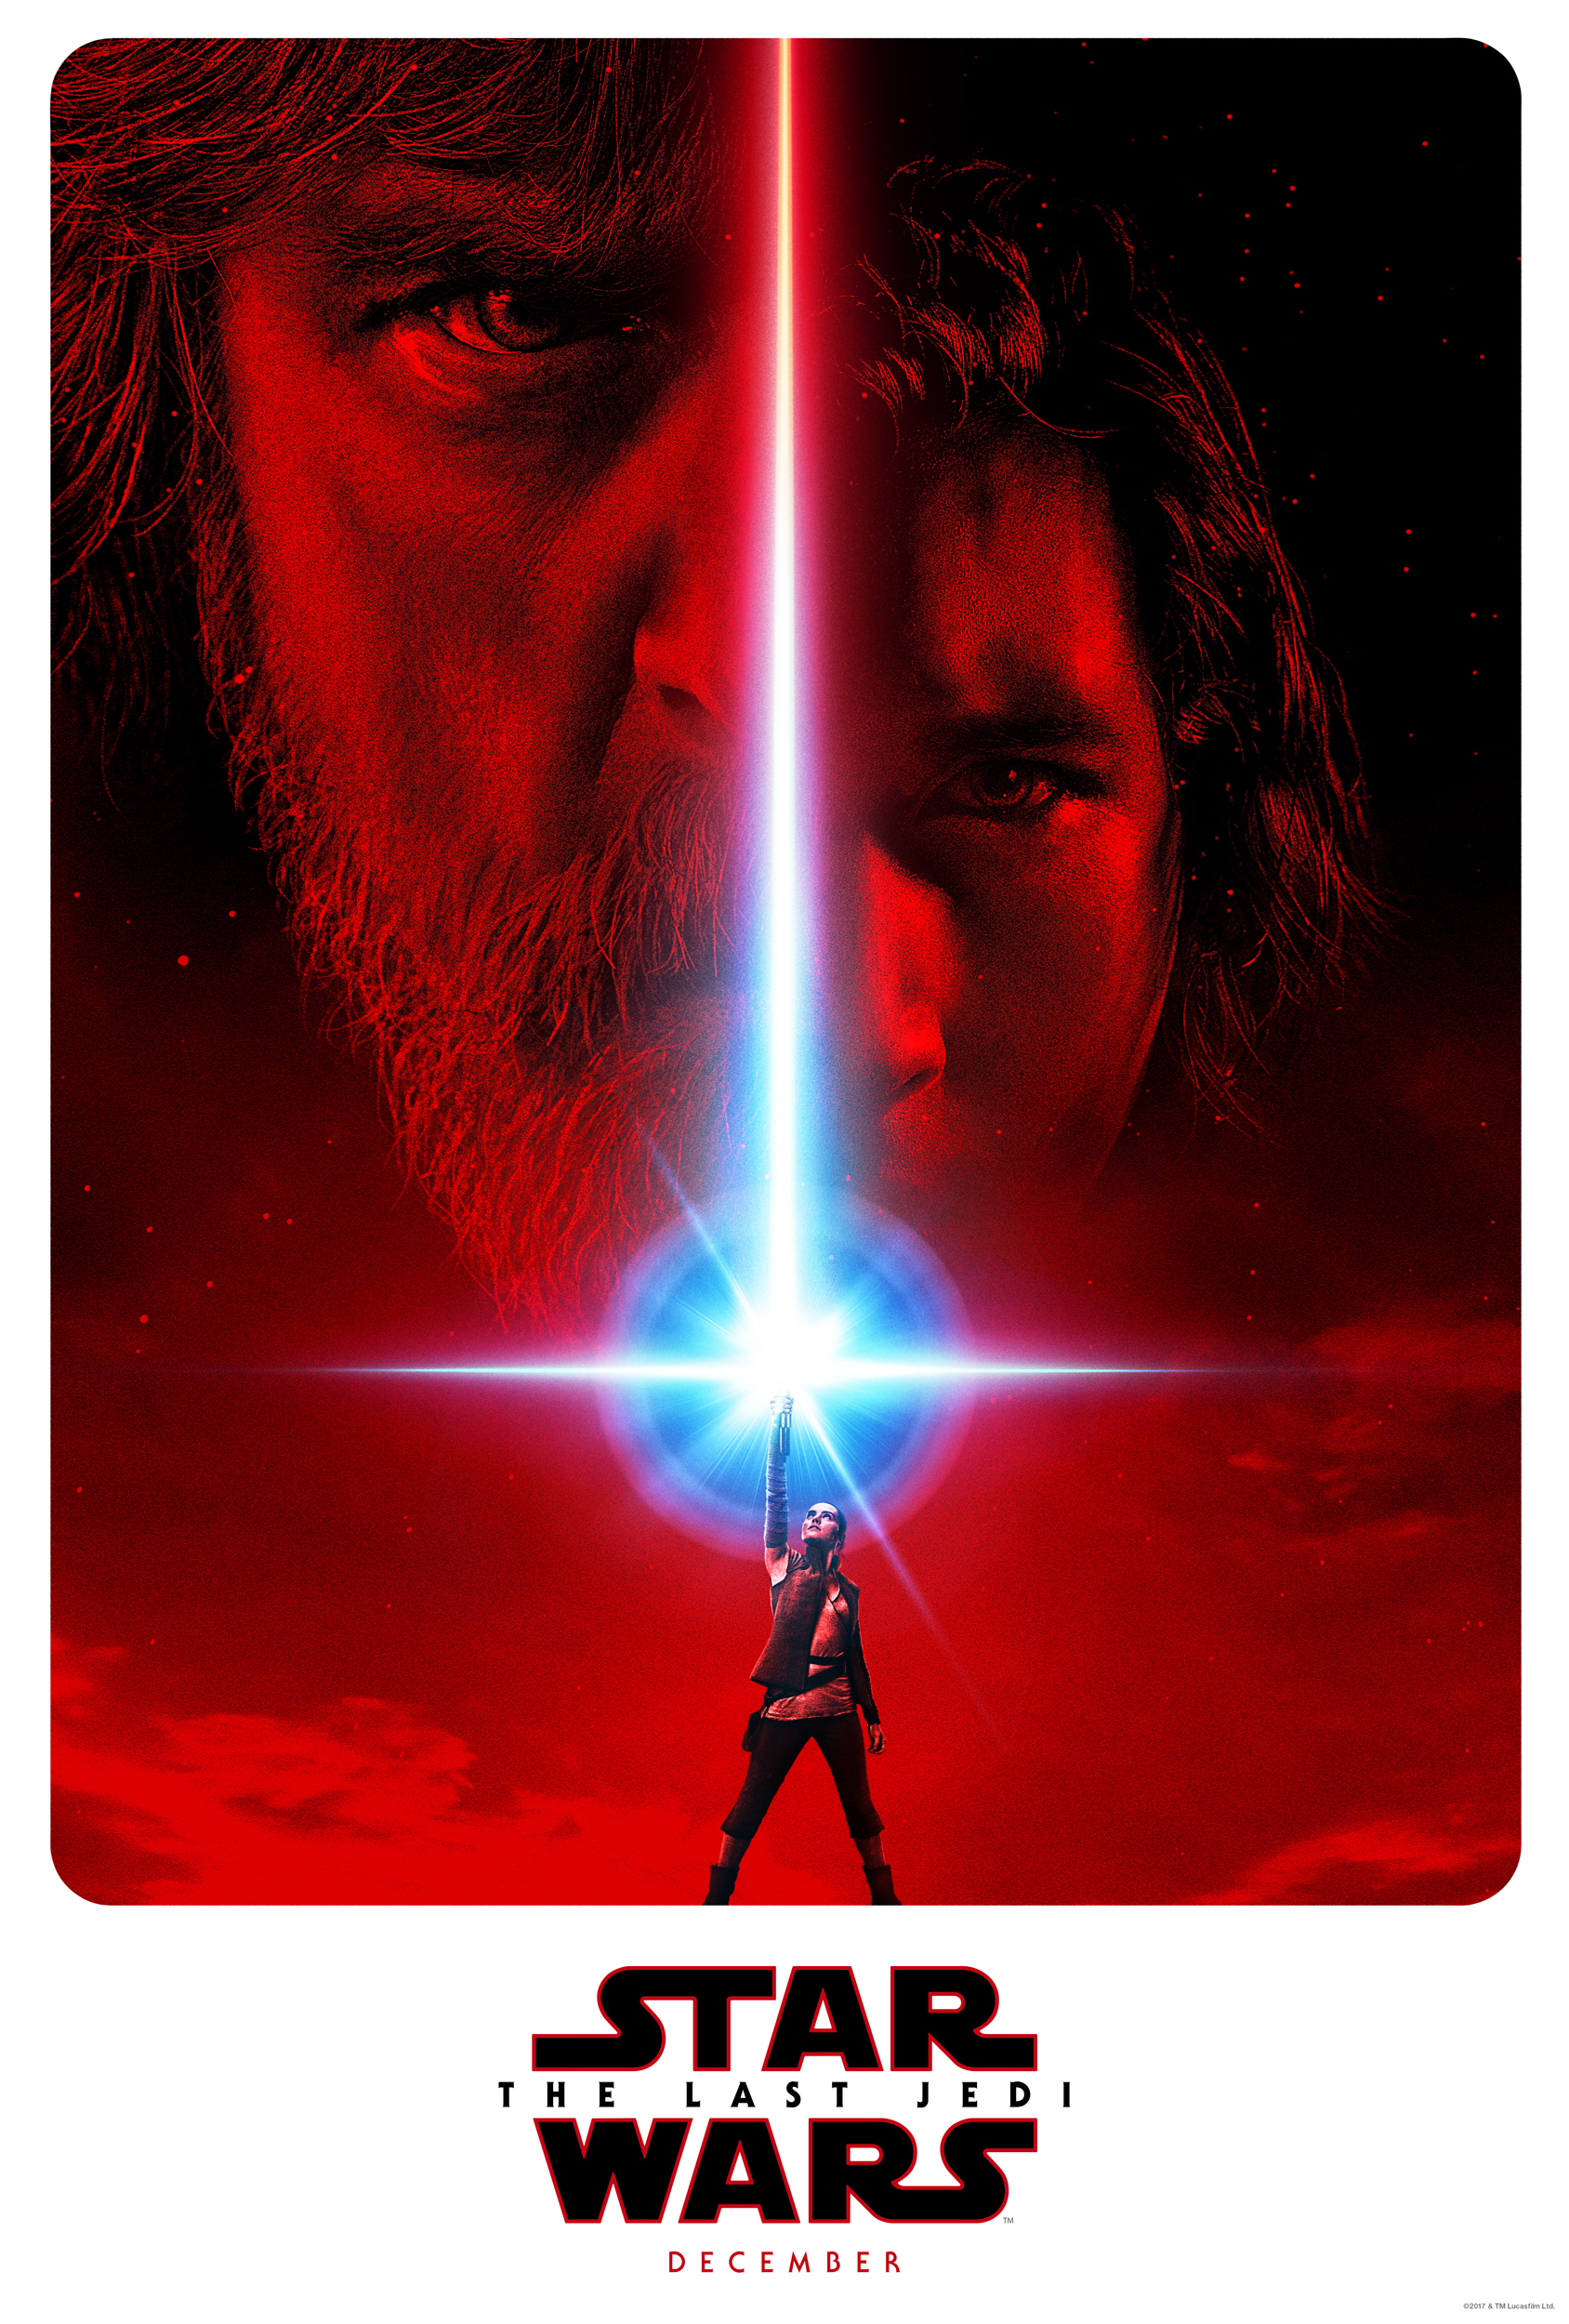 How Was The Calendar Created Universe Universe Is Created According To Kepler Apr 27 4977 Star Wars The Last Jedi's First Poster Is A Stunning